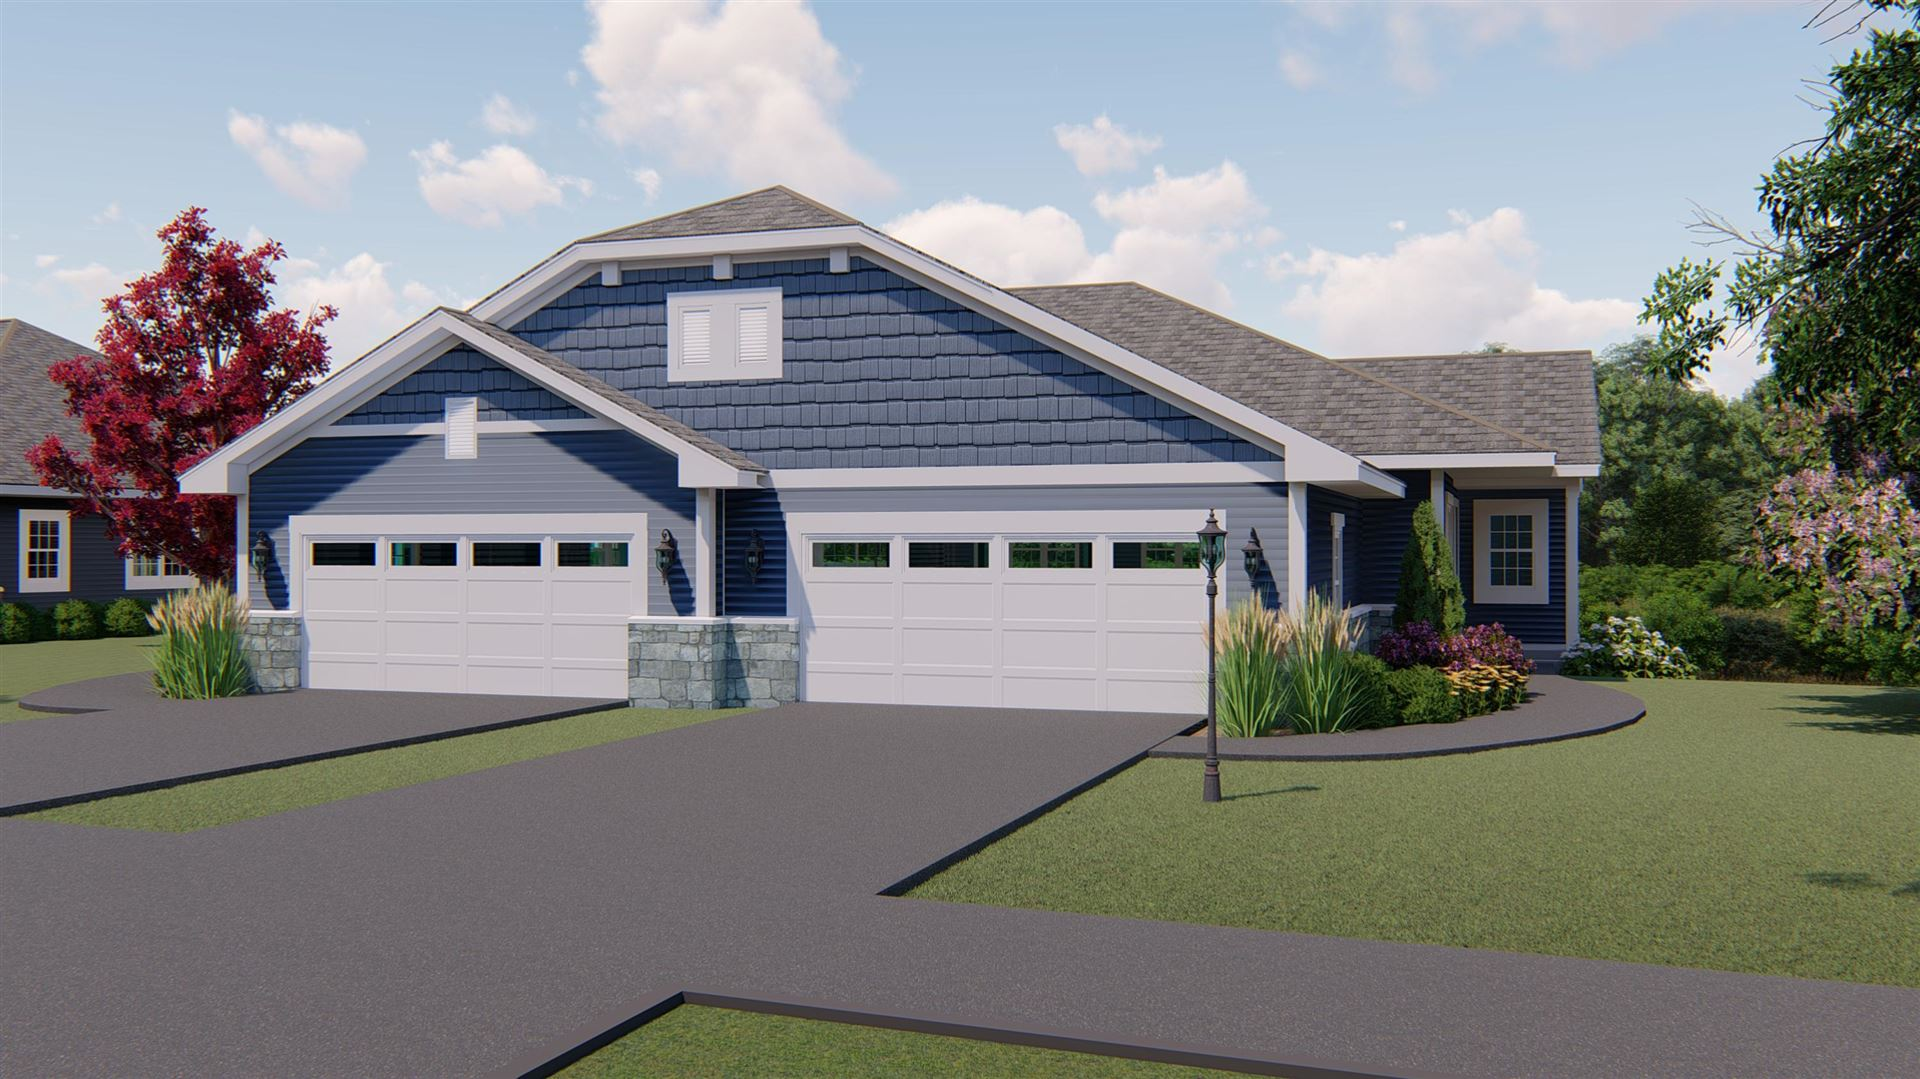 19920 Overstone Dr #20-1, Lannon, WI 53046 - #: 1670203